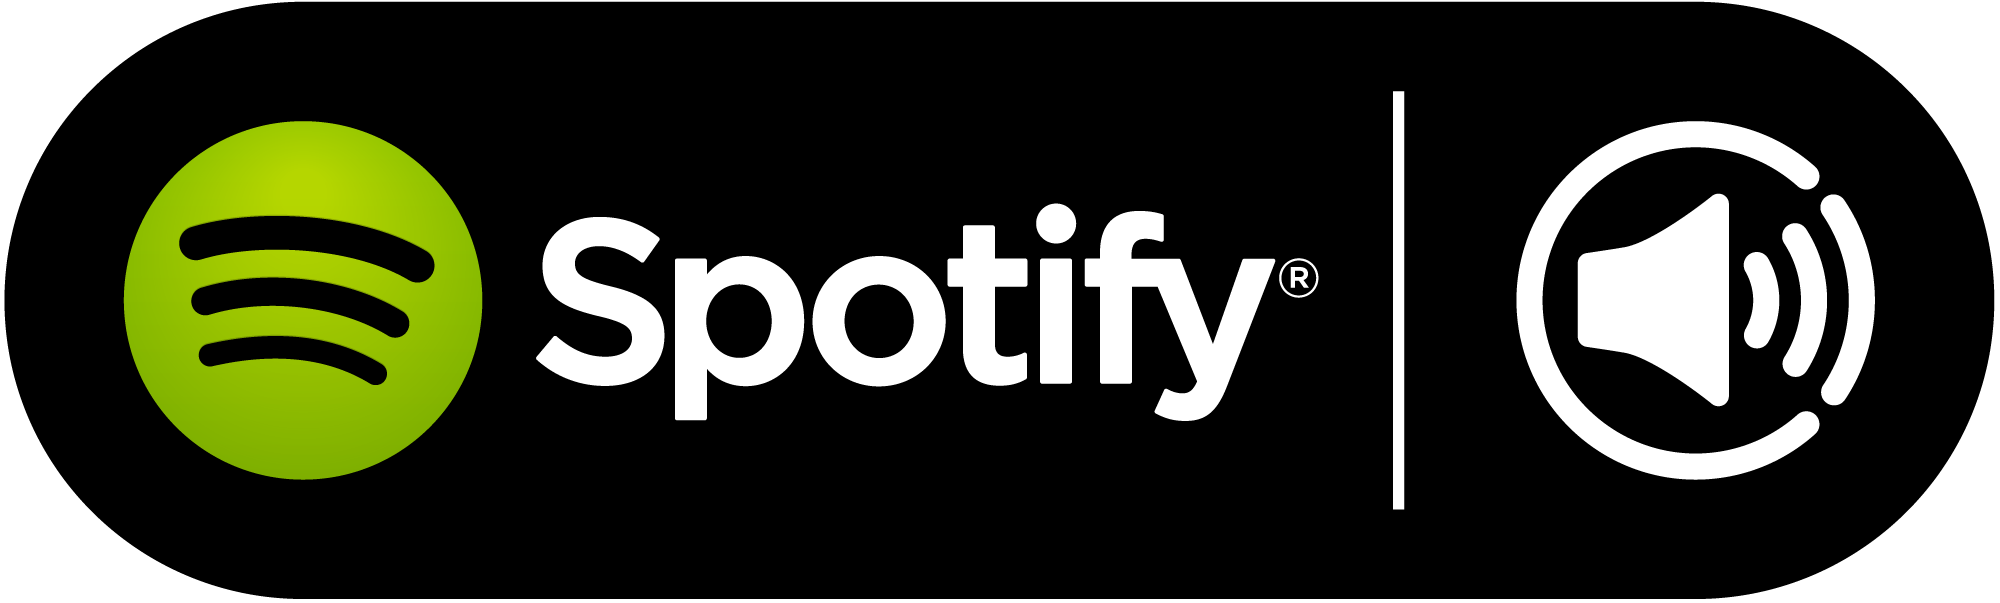 Listen in buttons png. Spotify attempts to clarify